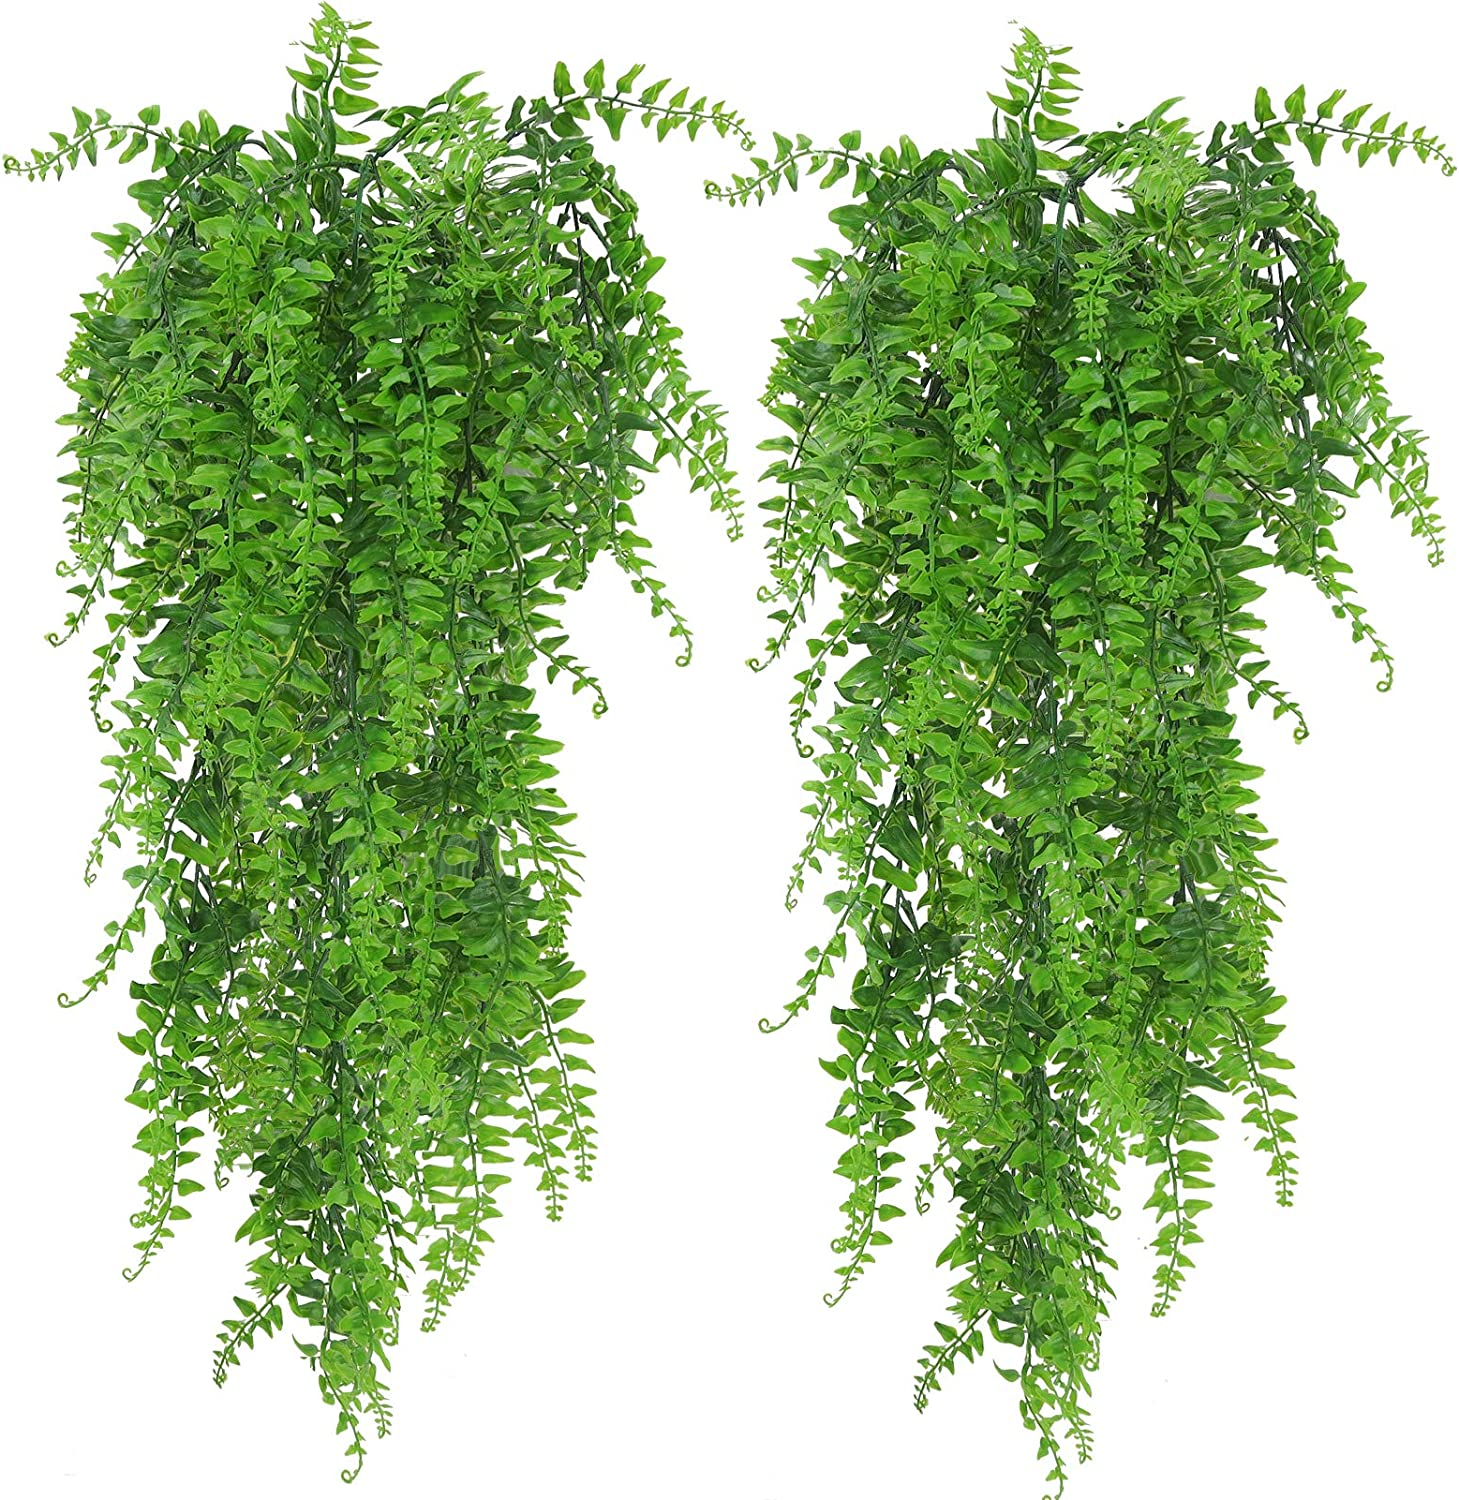 Huryfox 2 Pack Artificial Hanging Plants Fake Ivy Leaves Wall Decoration for Indoor Outdoor, Greenery Home Decor Faux Vine for Living Room & Garden/Bedroom/Farmhouse/Valentine Decorations